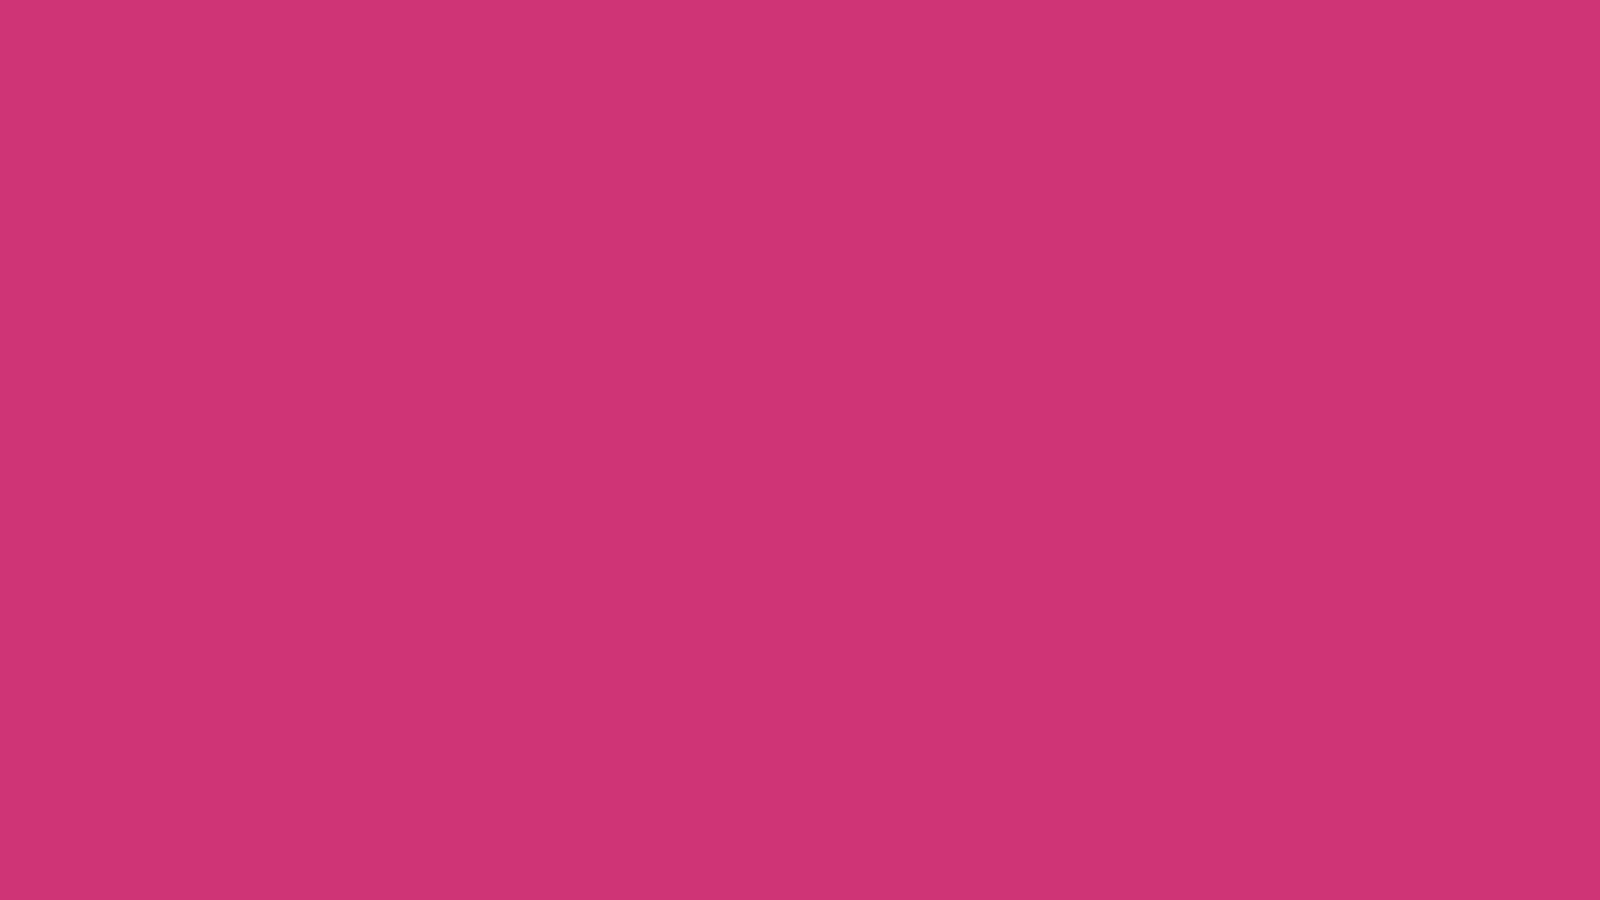 1600x900 Telemagenta Solid Color Background